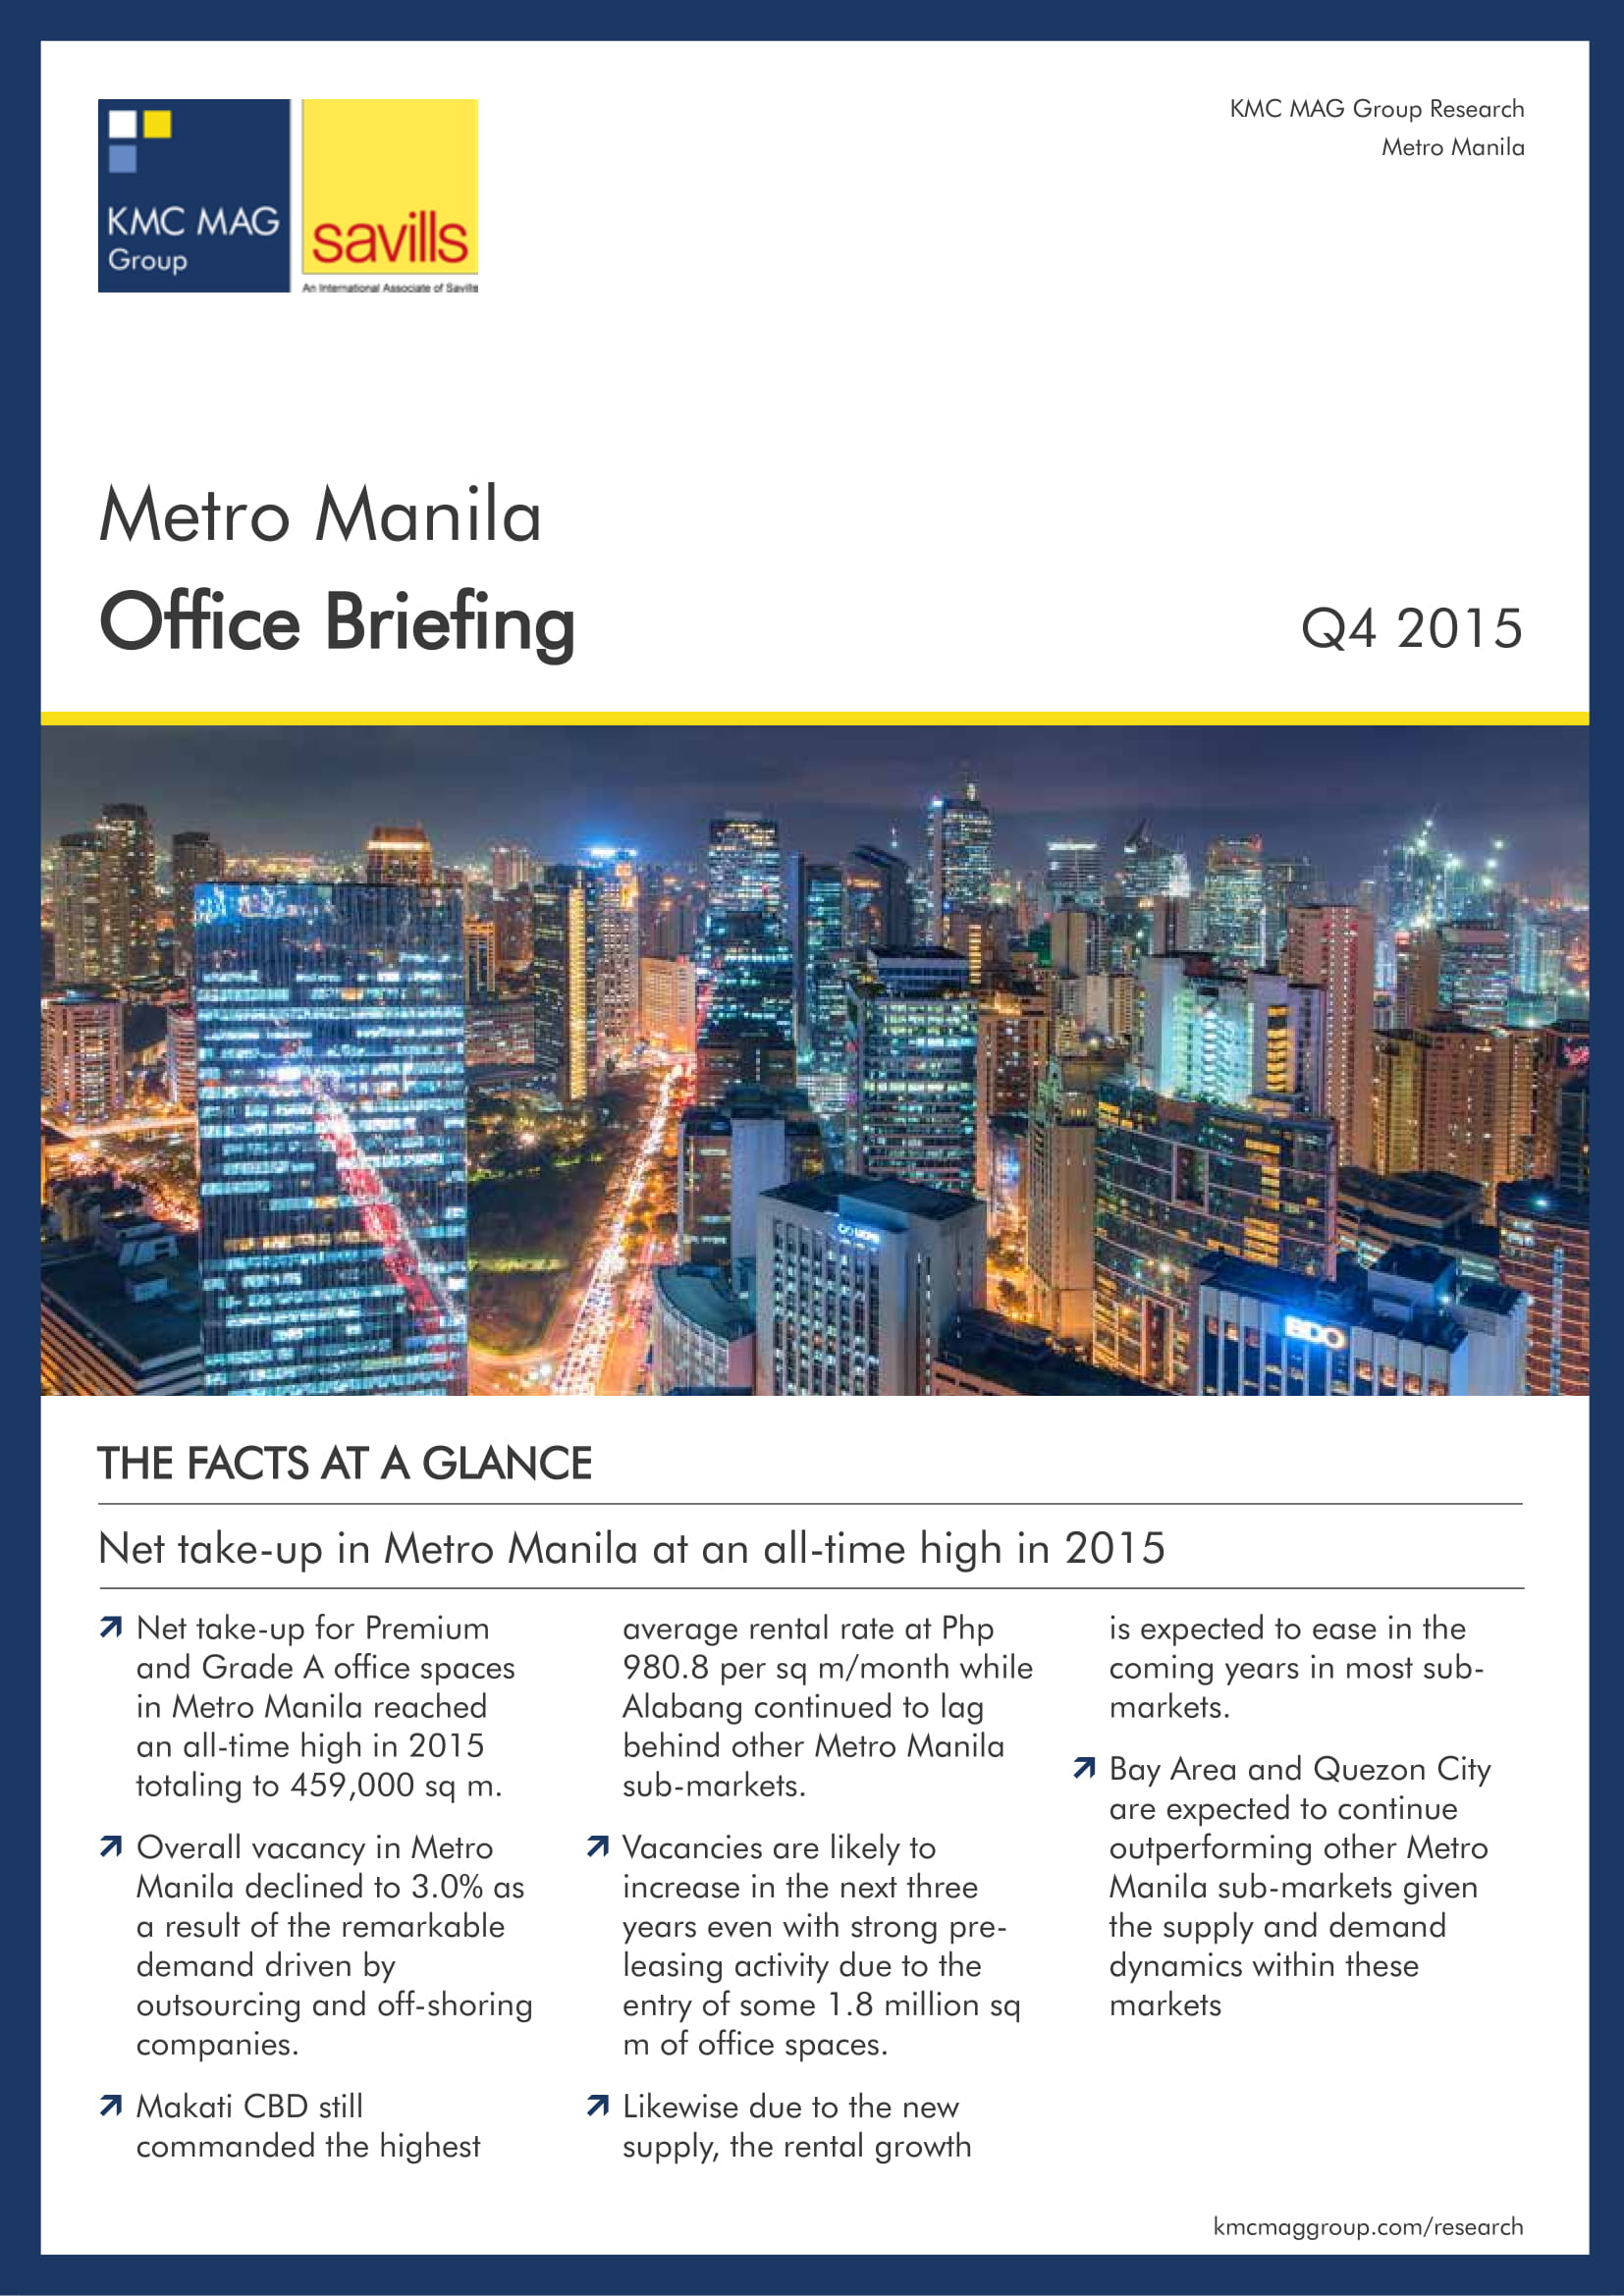 Metro Manila Office Briefing Q4 2015